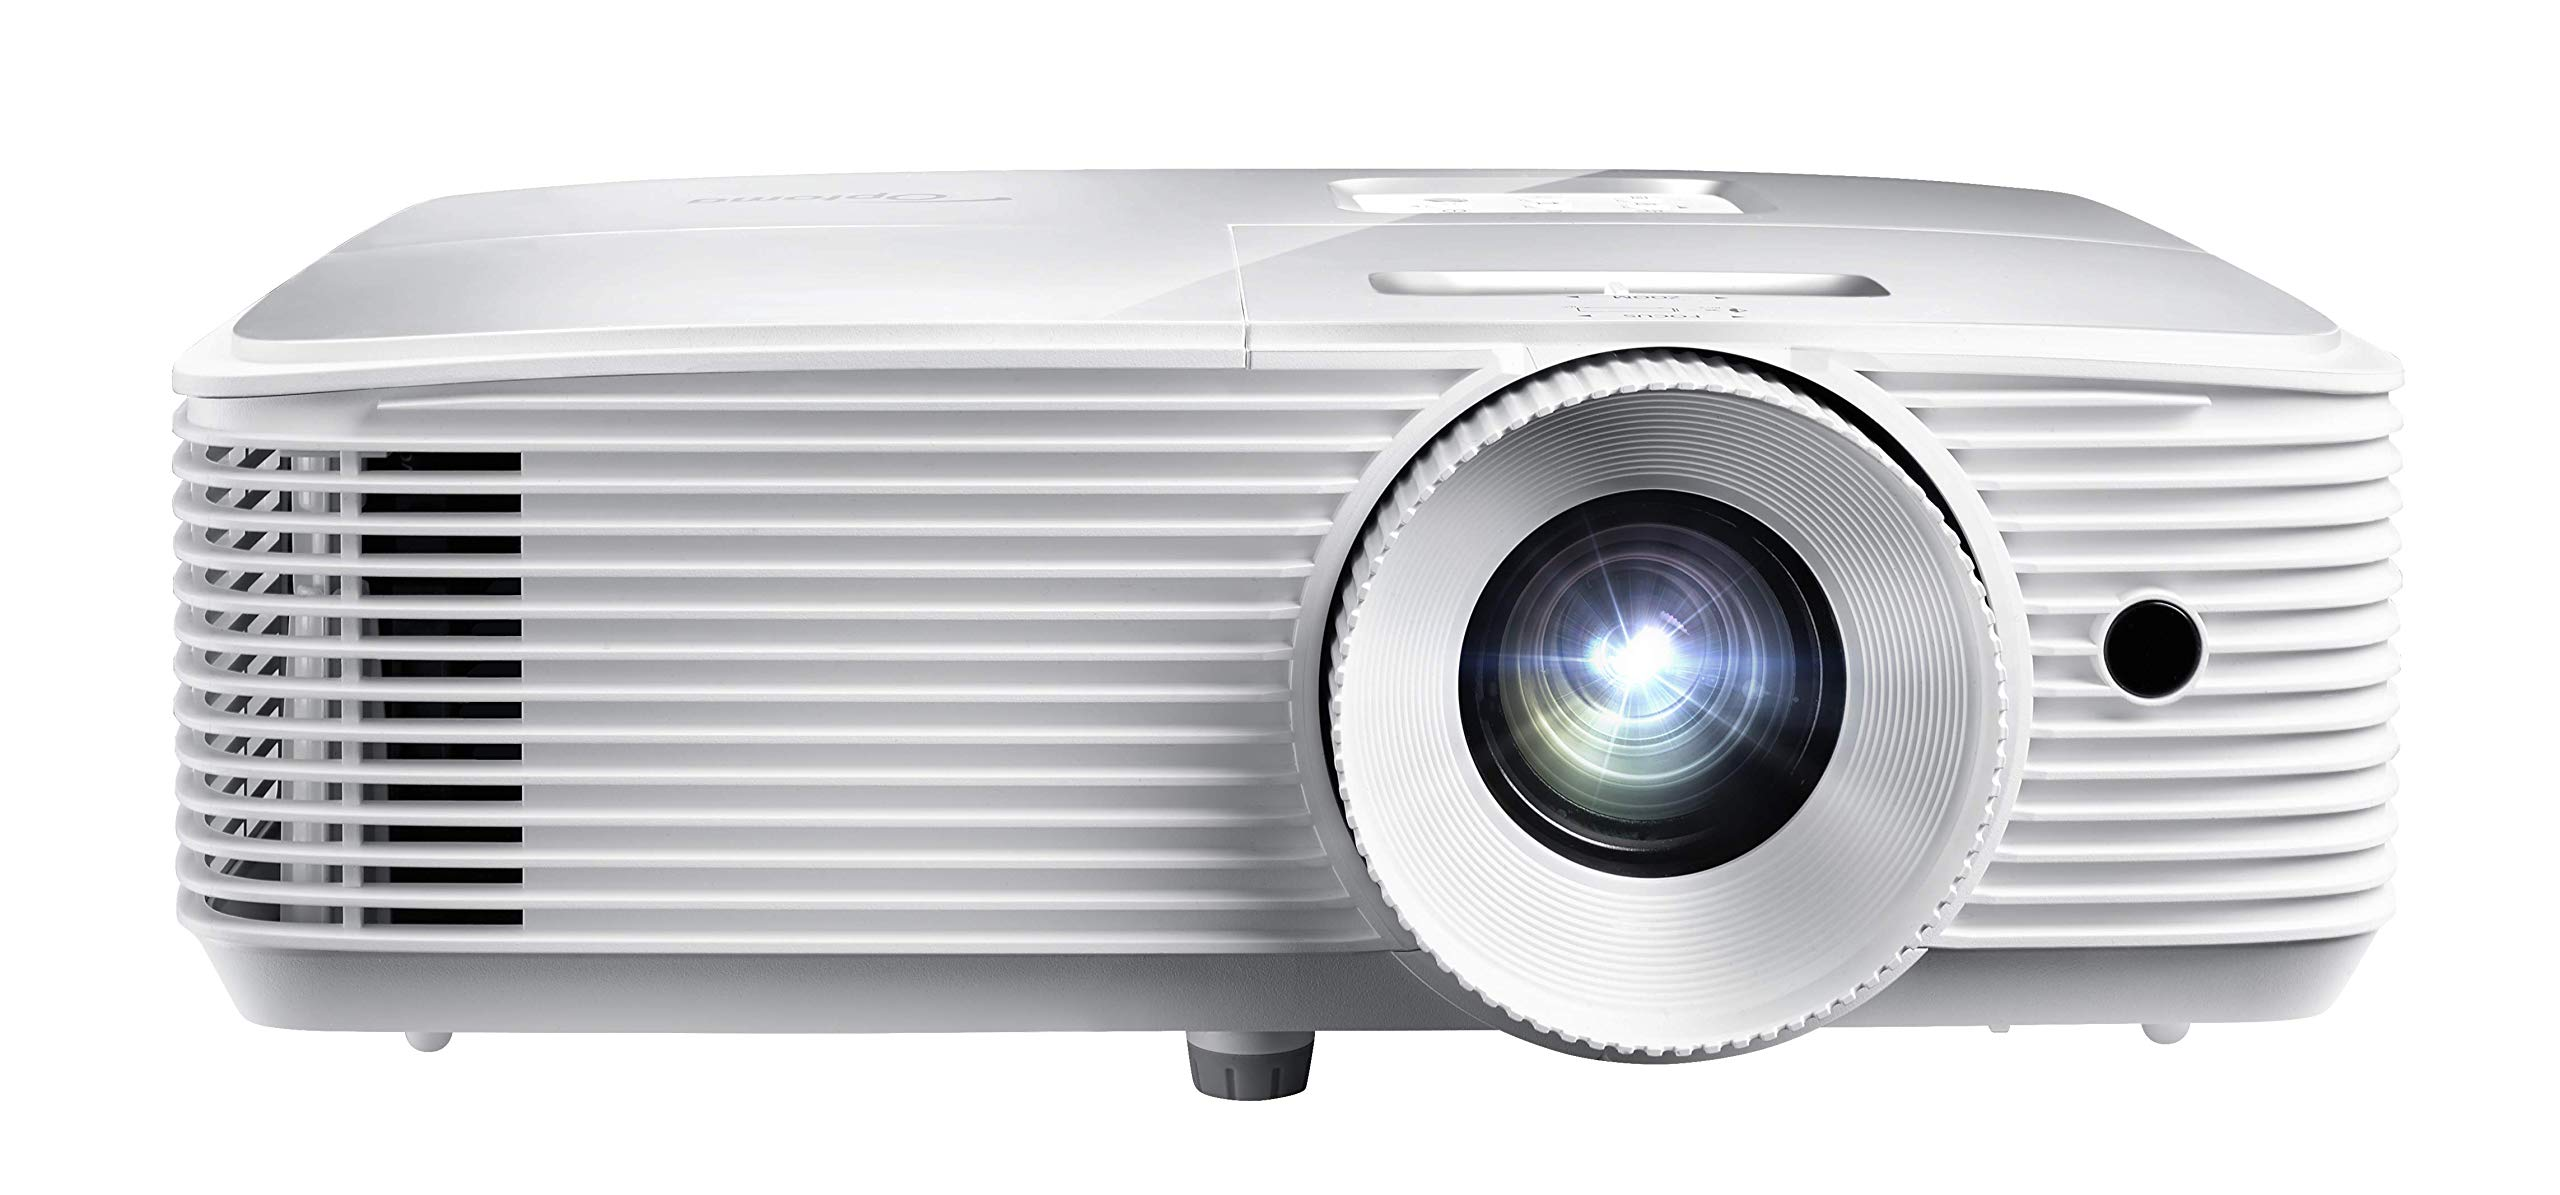 Optoma HD27HDR 1080p 4K HDR Ready Home Theater Projector for Gaming and Movies, 120Hz Support and HDMI 2.0 by Optoma